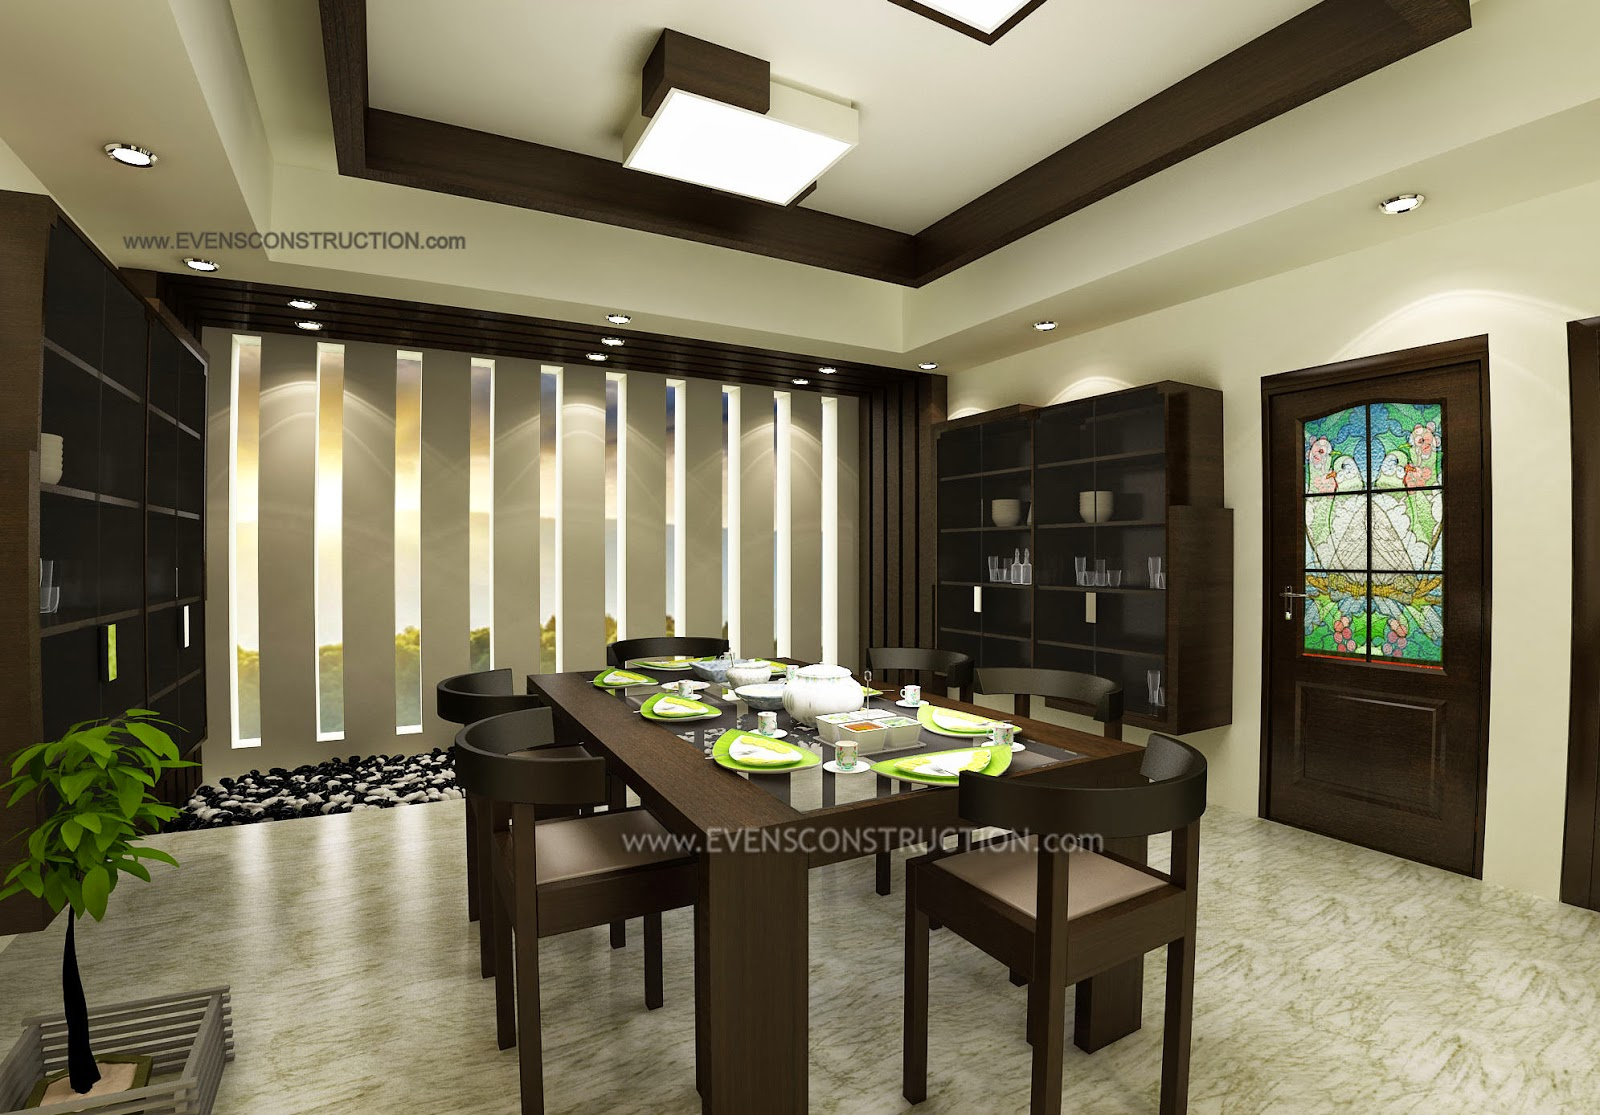 Evens construction pvt ltd modern dining room for Home dining room design